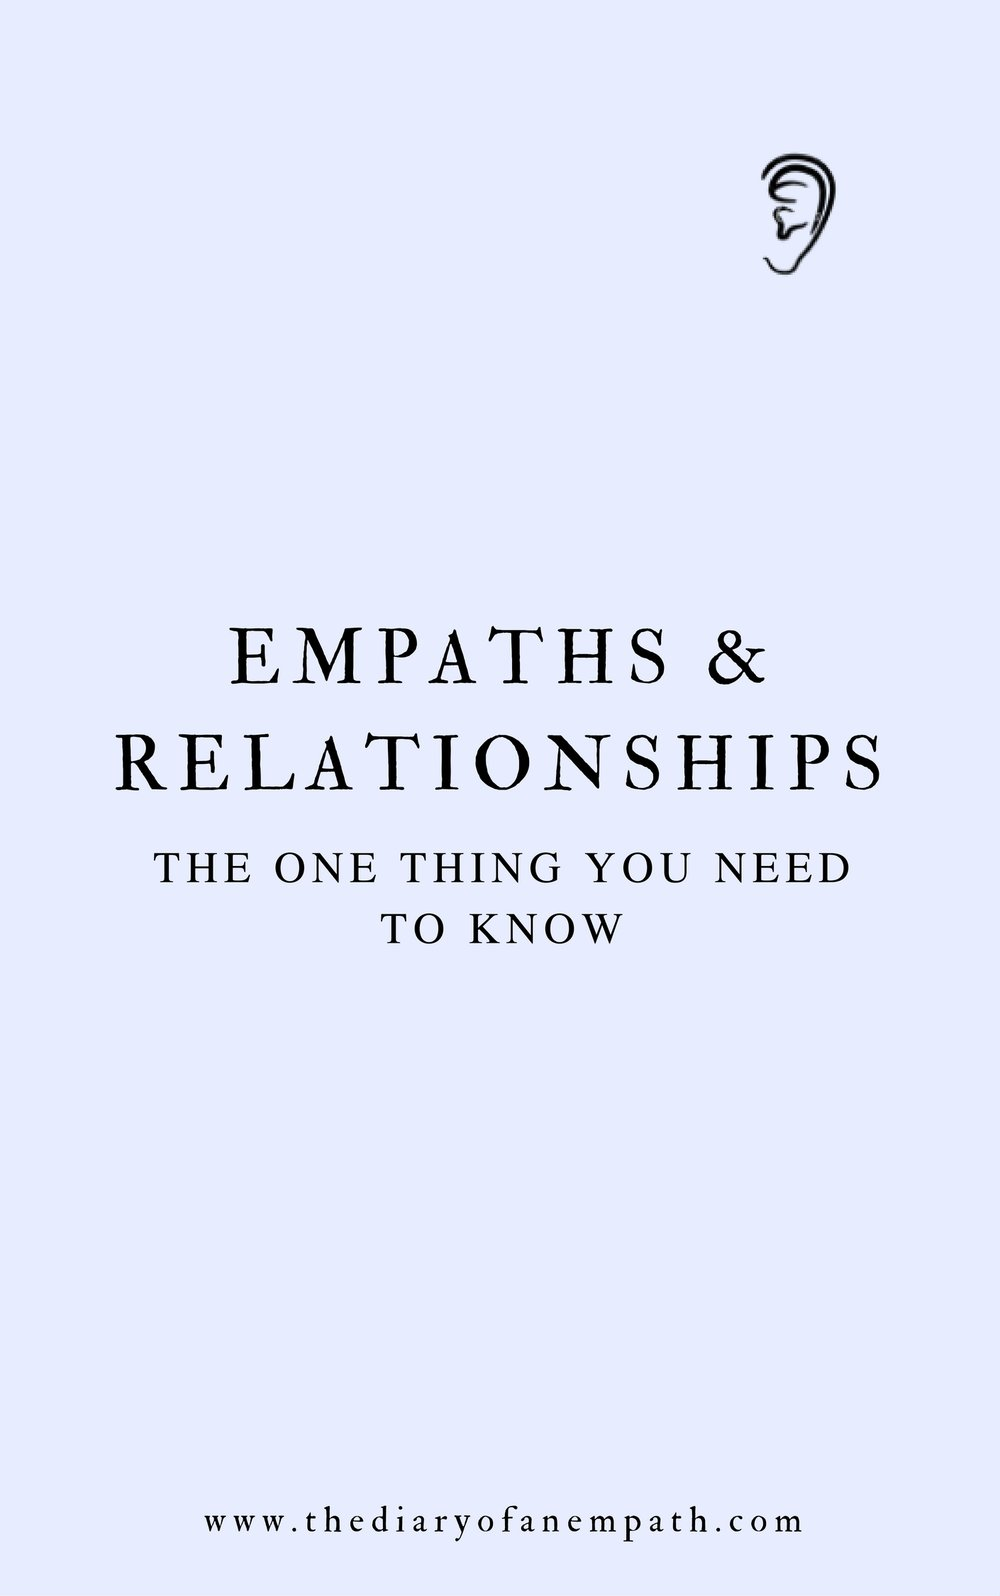 empaths and relationships, thediaryofanempath.com